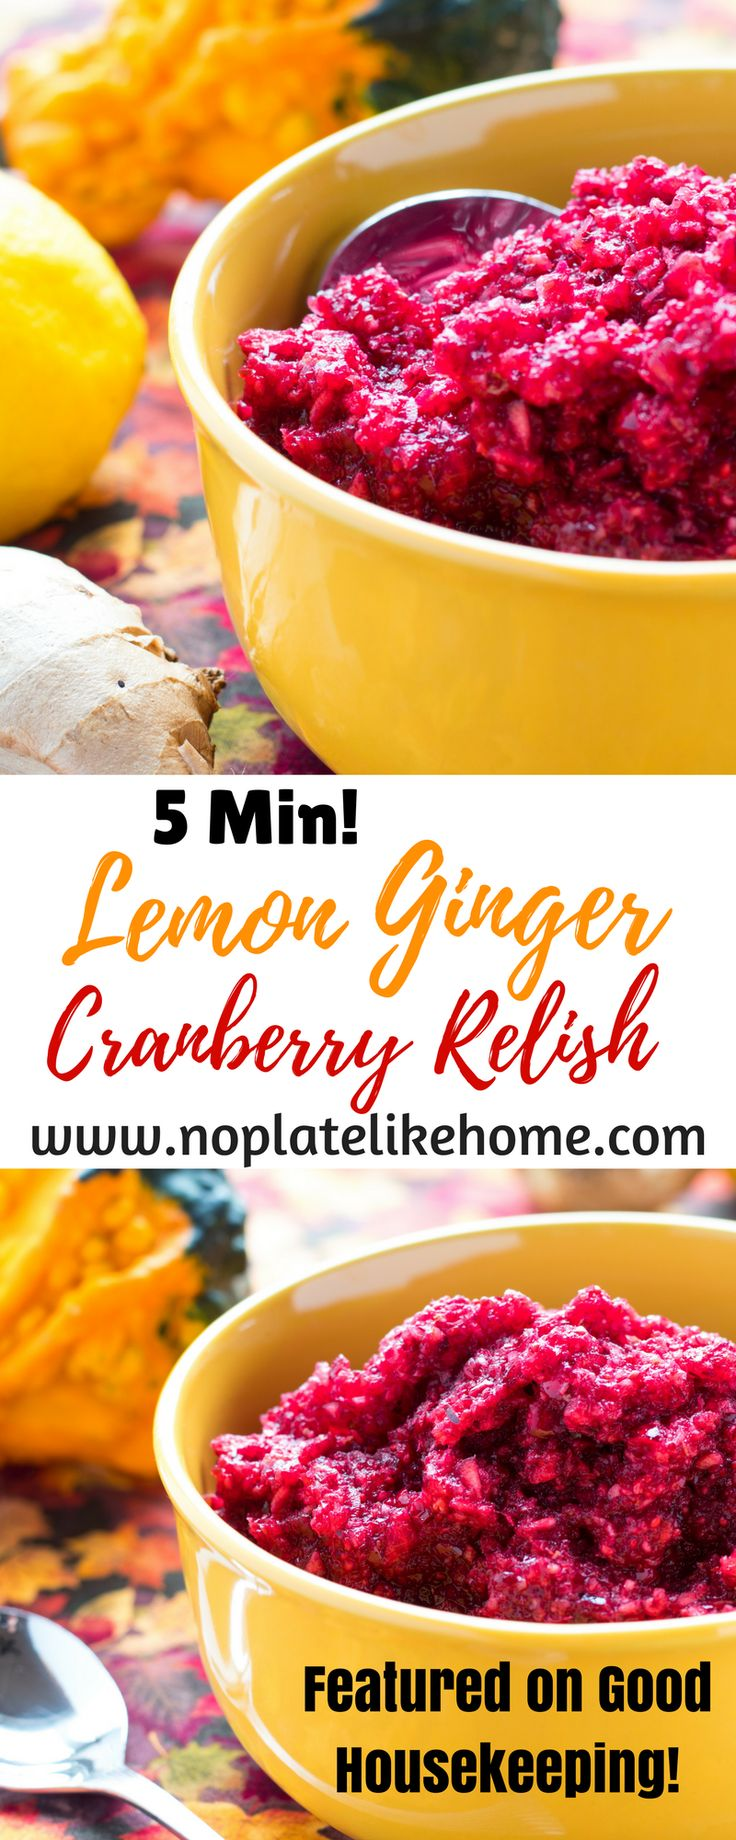 Featured in Good Housekeeping!  Lemon Ginger Cranberry relish is tart but, not too sweet and tastes great with Thanksgiving turkey. It is made with fresh Ocean Spray cranberries, pineapple juice, grated ginger, lemon zest, cloves and sugar. It only takes minutes to make with a food processor and freezes well. Why buy canned cranberry sauce? Pin for Thanksgiving! #cranberryrelish #foodie #yummy